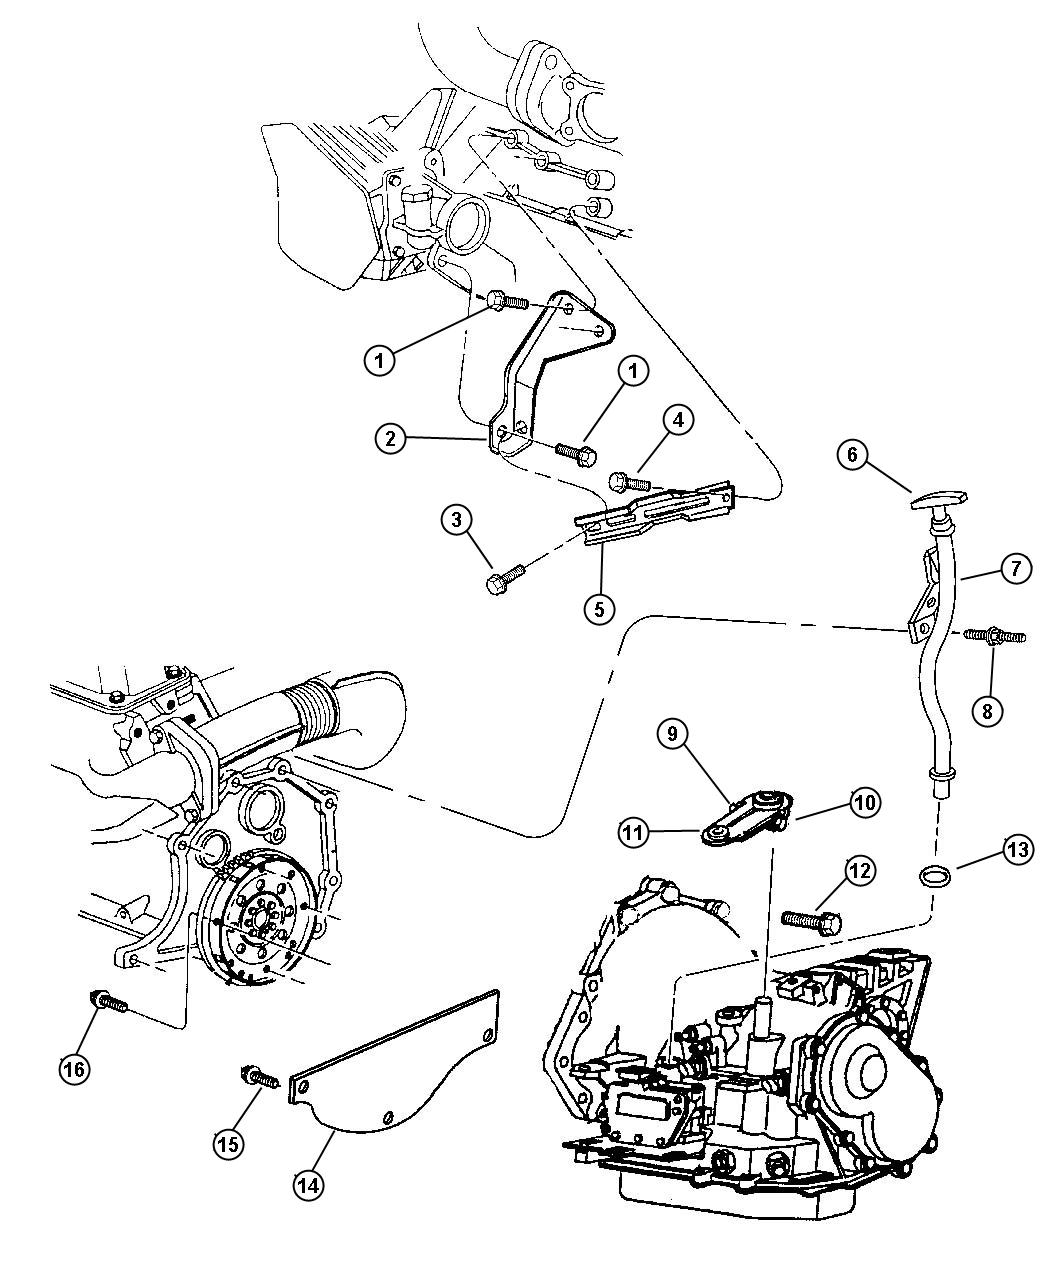 Plymouth Grand Voyager Transaxle Mounting And Misc